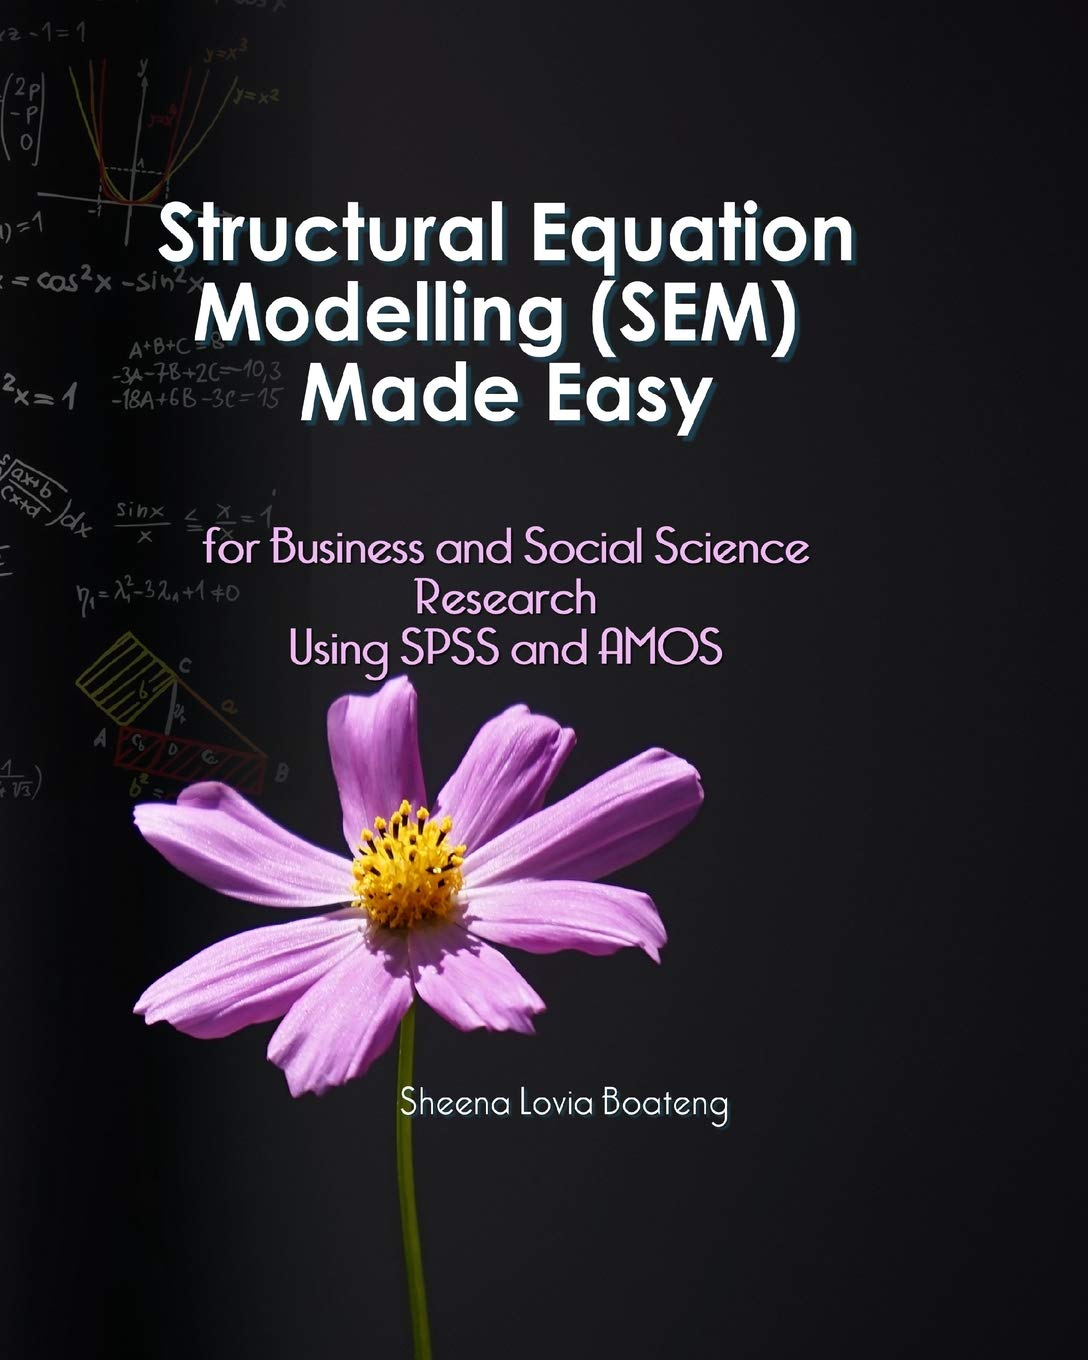 Structural Equation Modelling Made Easy for Business and